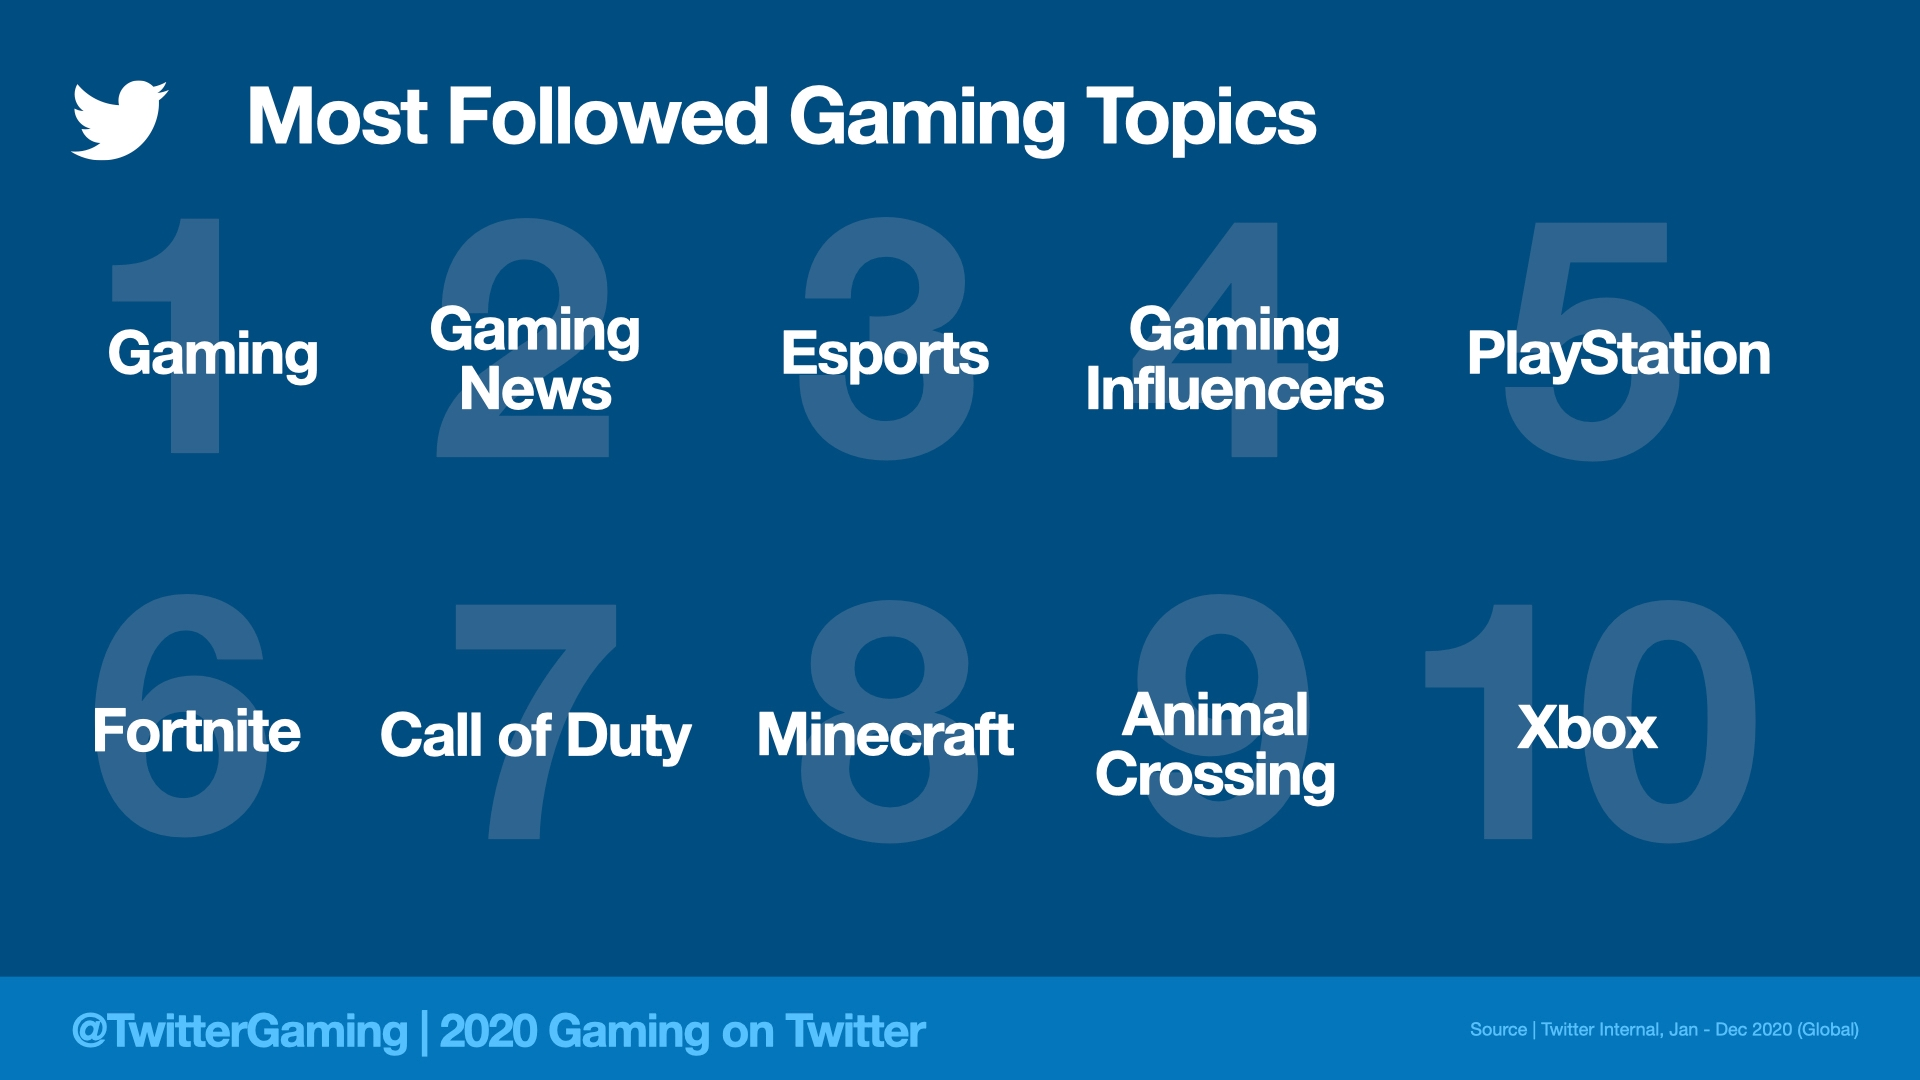 Gaming Topics on Twitter in 2020